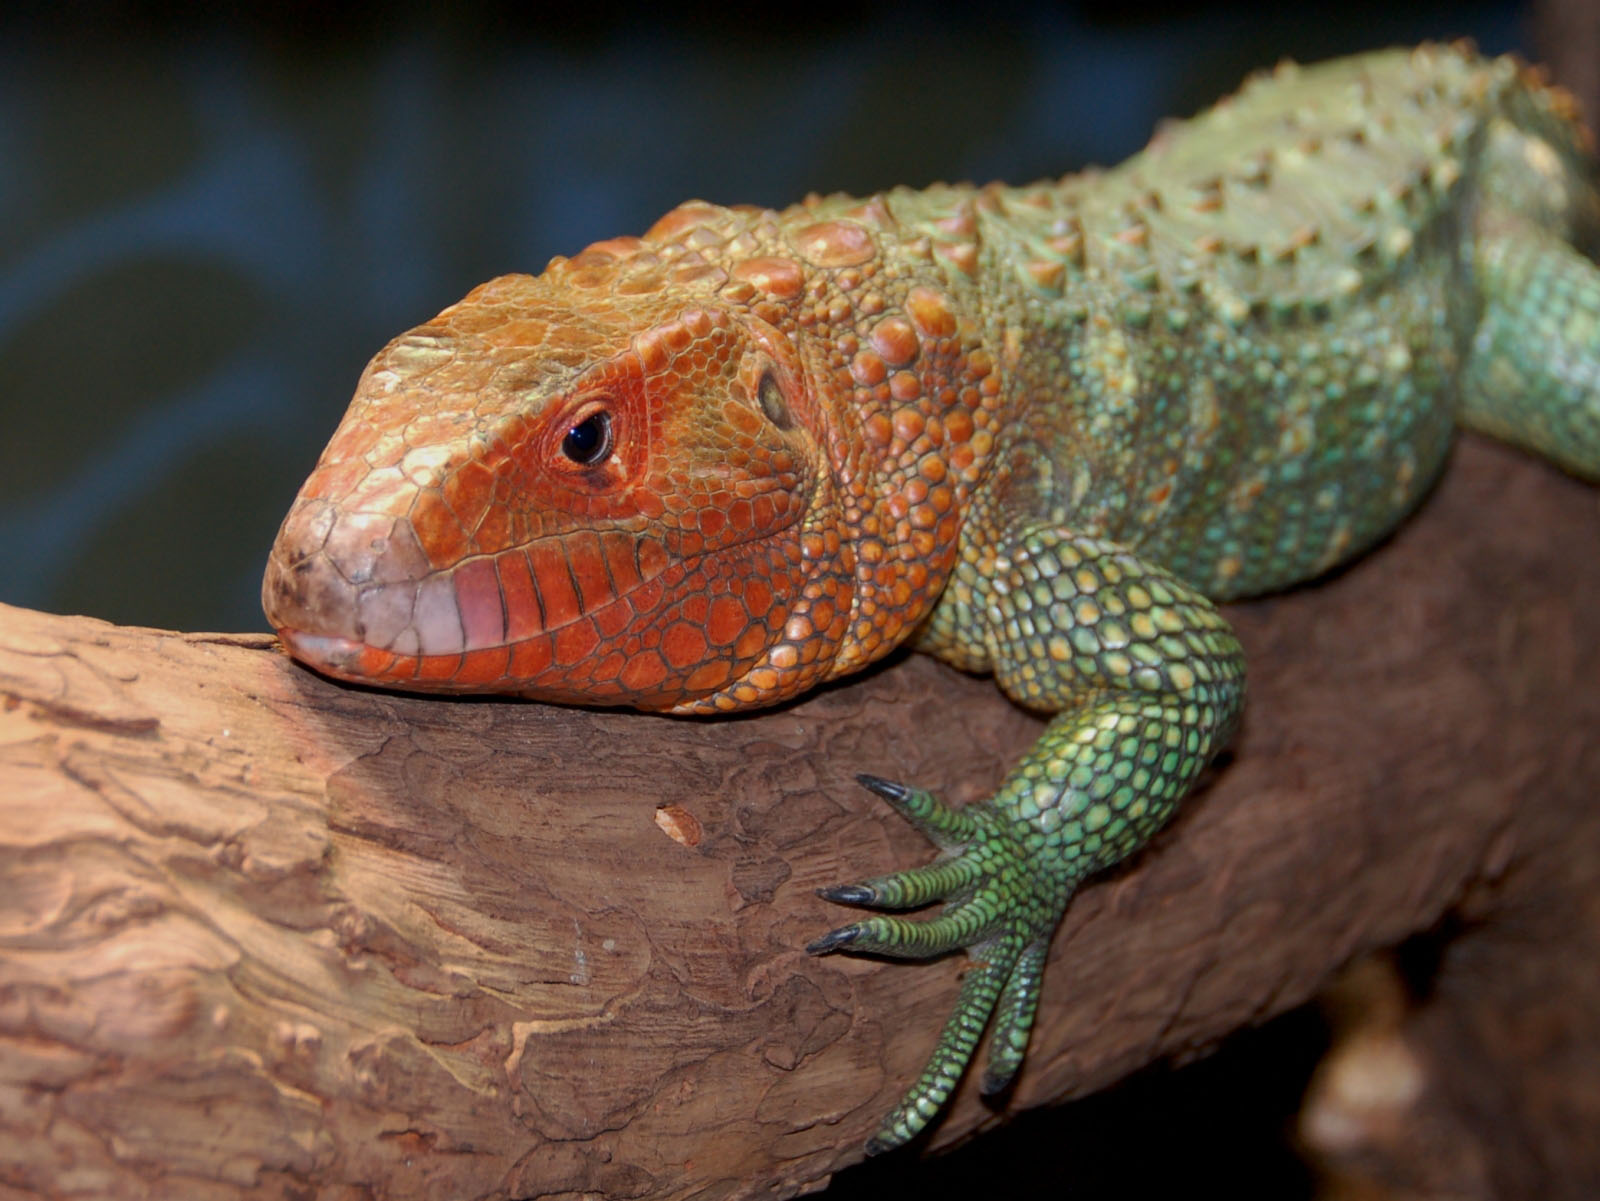 Discussion thread: What are your dream reptiles? : reptiles